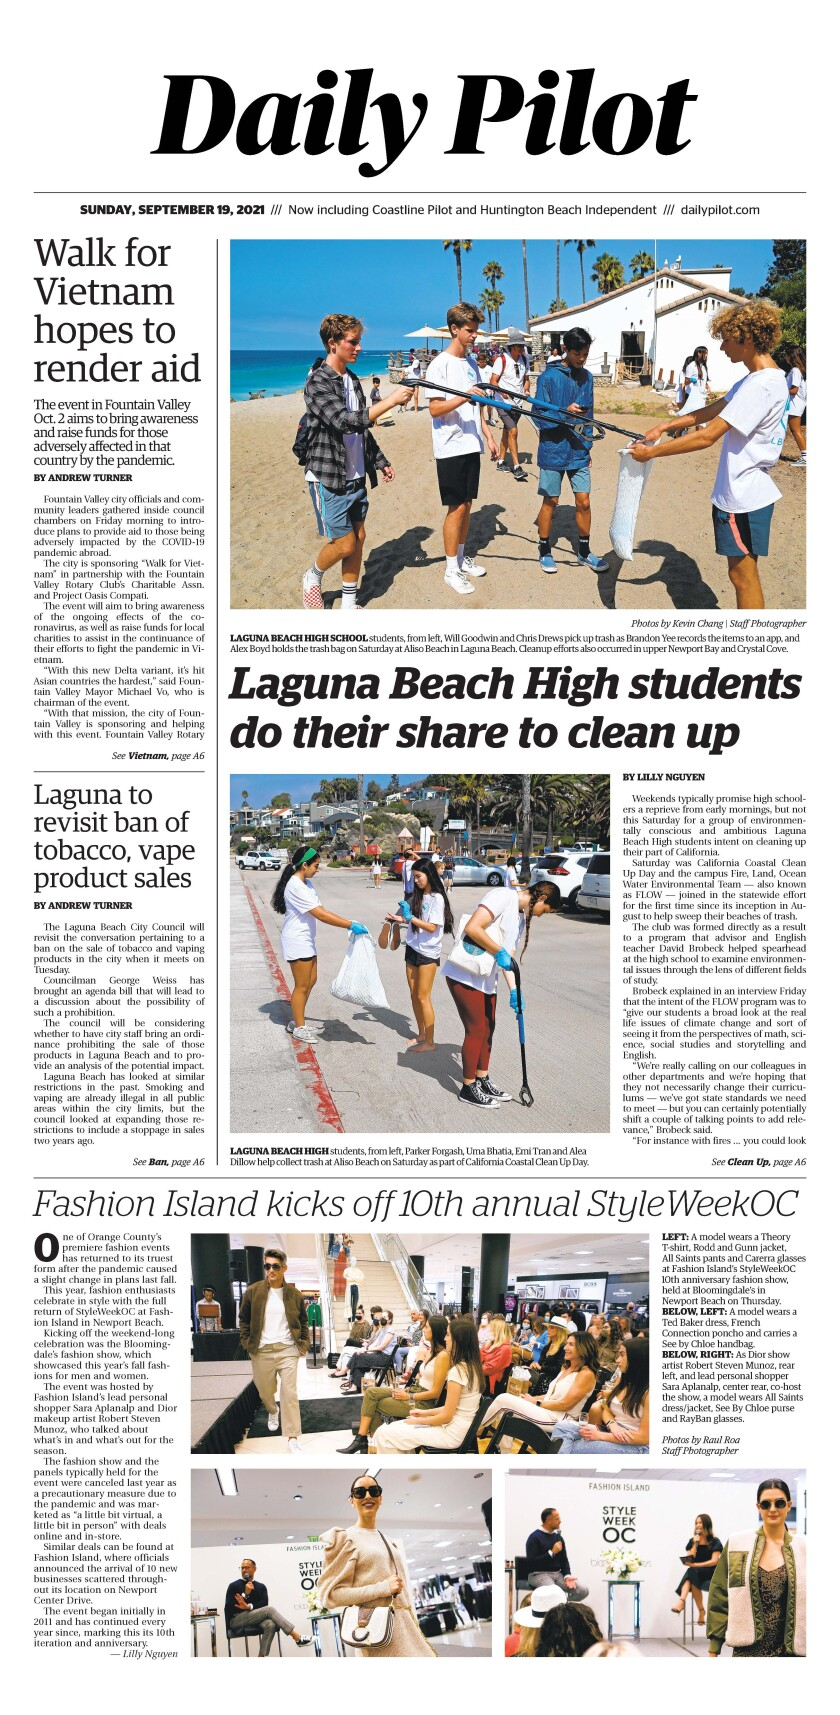 Front page of Daily Pilot e-newspaper for Sunday, Sept. 19, 2021.